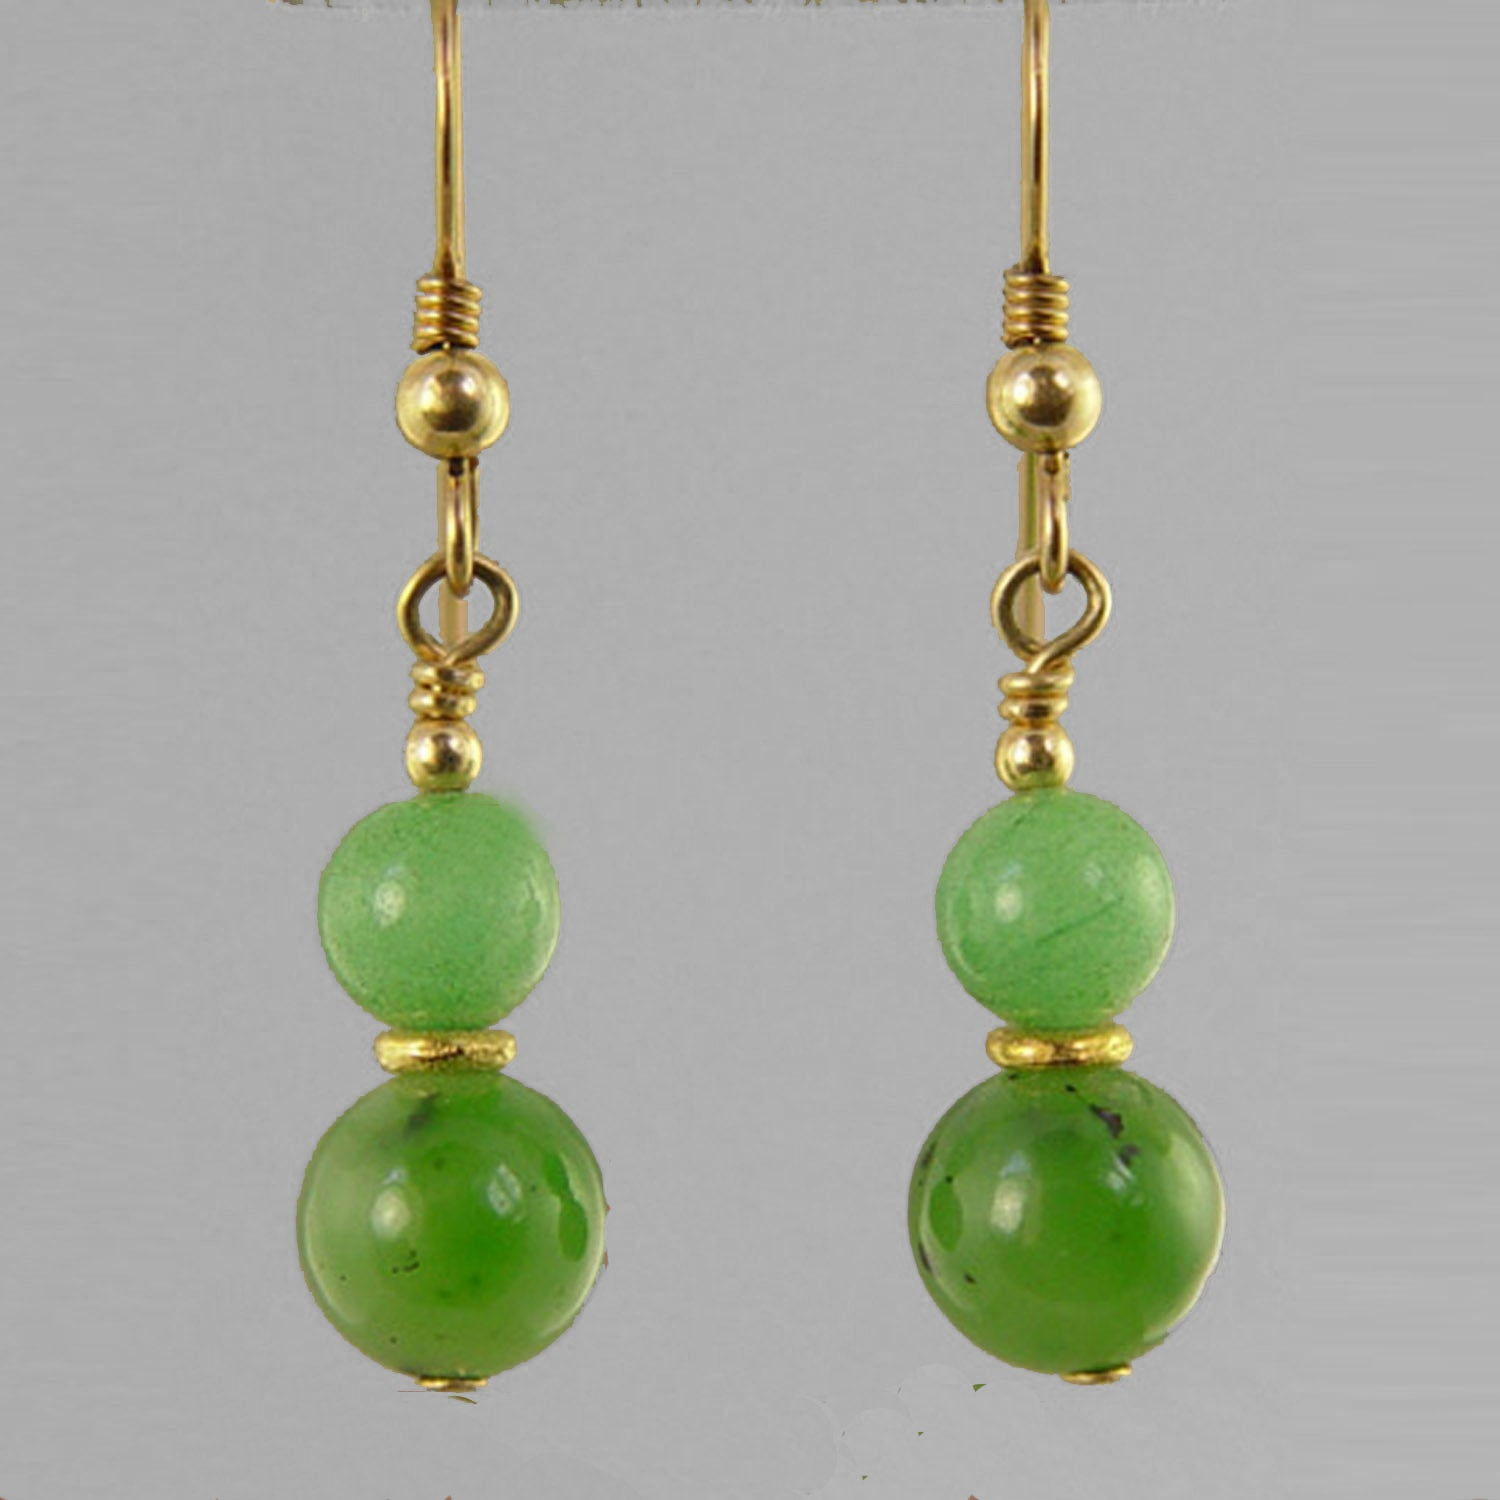 Jade Earrings - Round Ball Drop